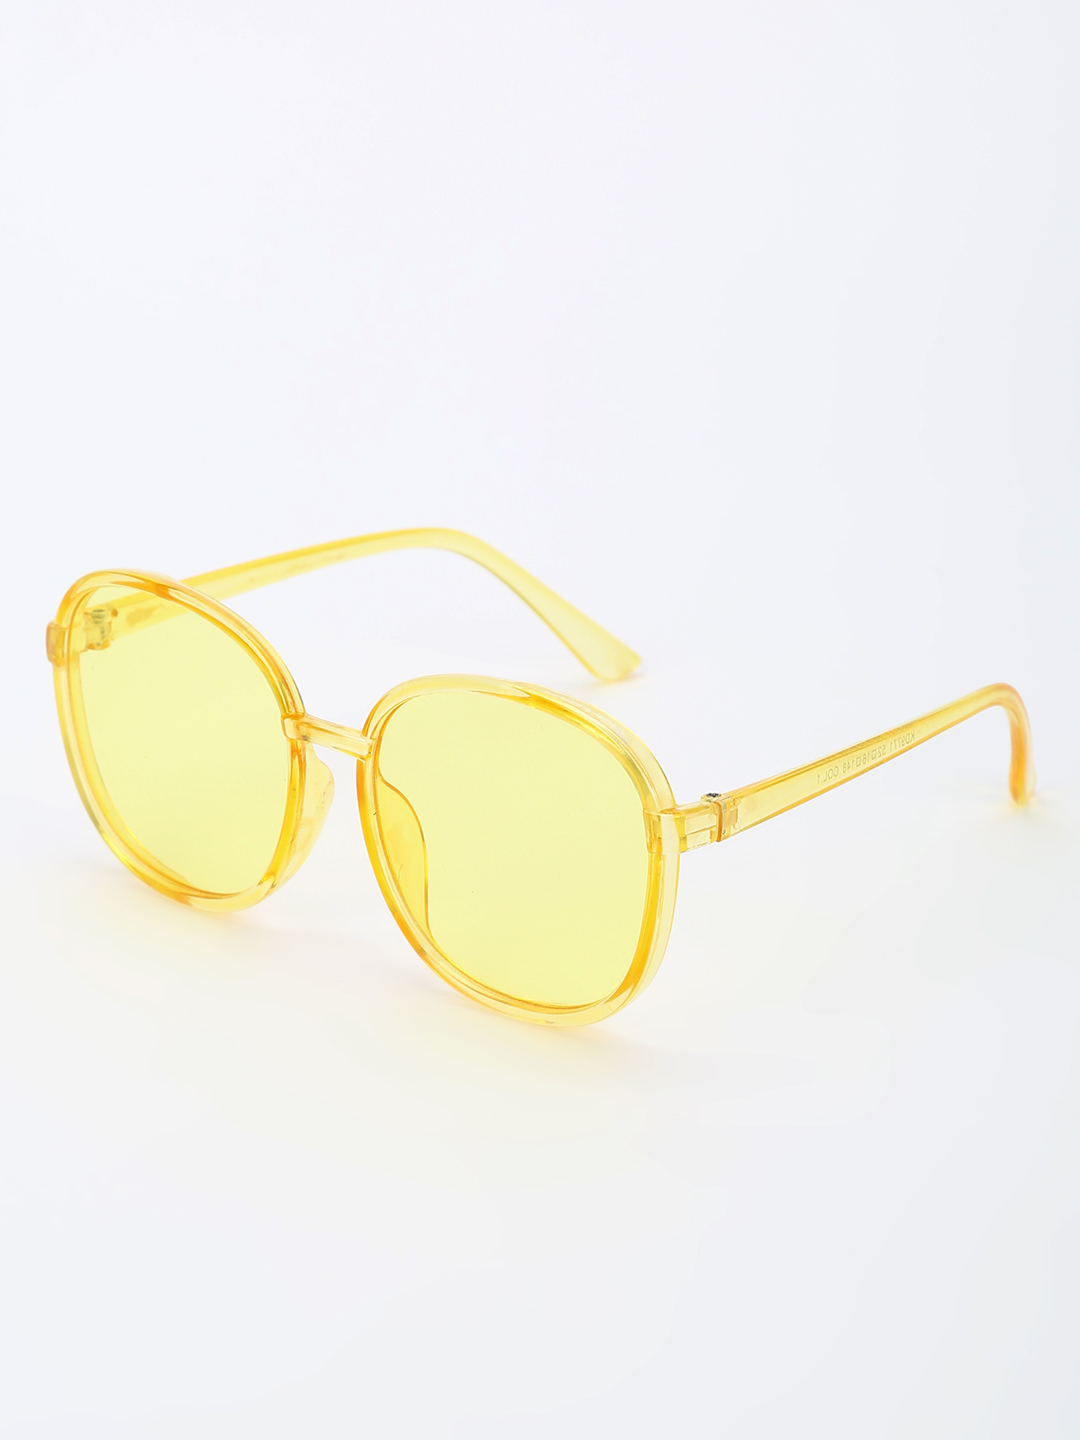 Pataaka Yellow Tinted Lens Retro Sunglasses 1